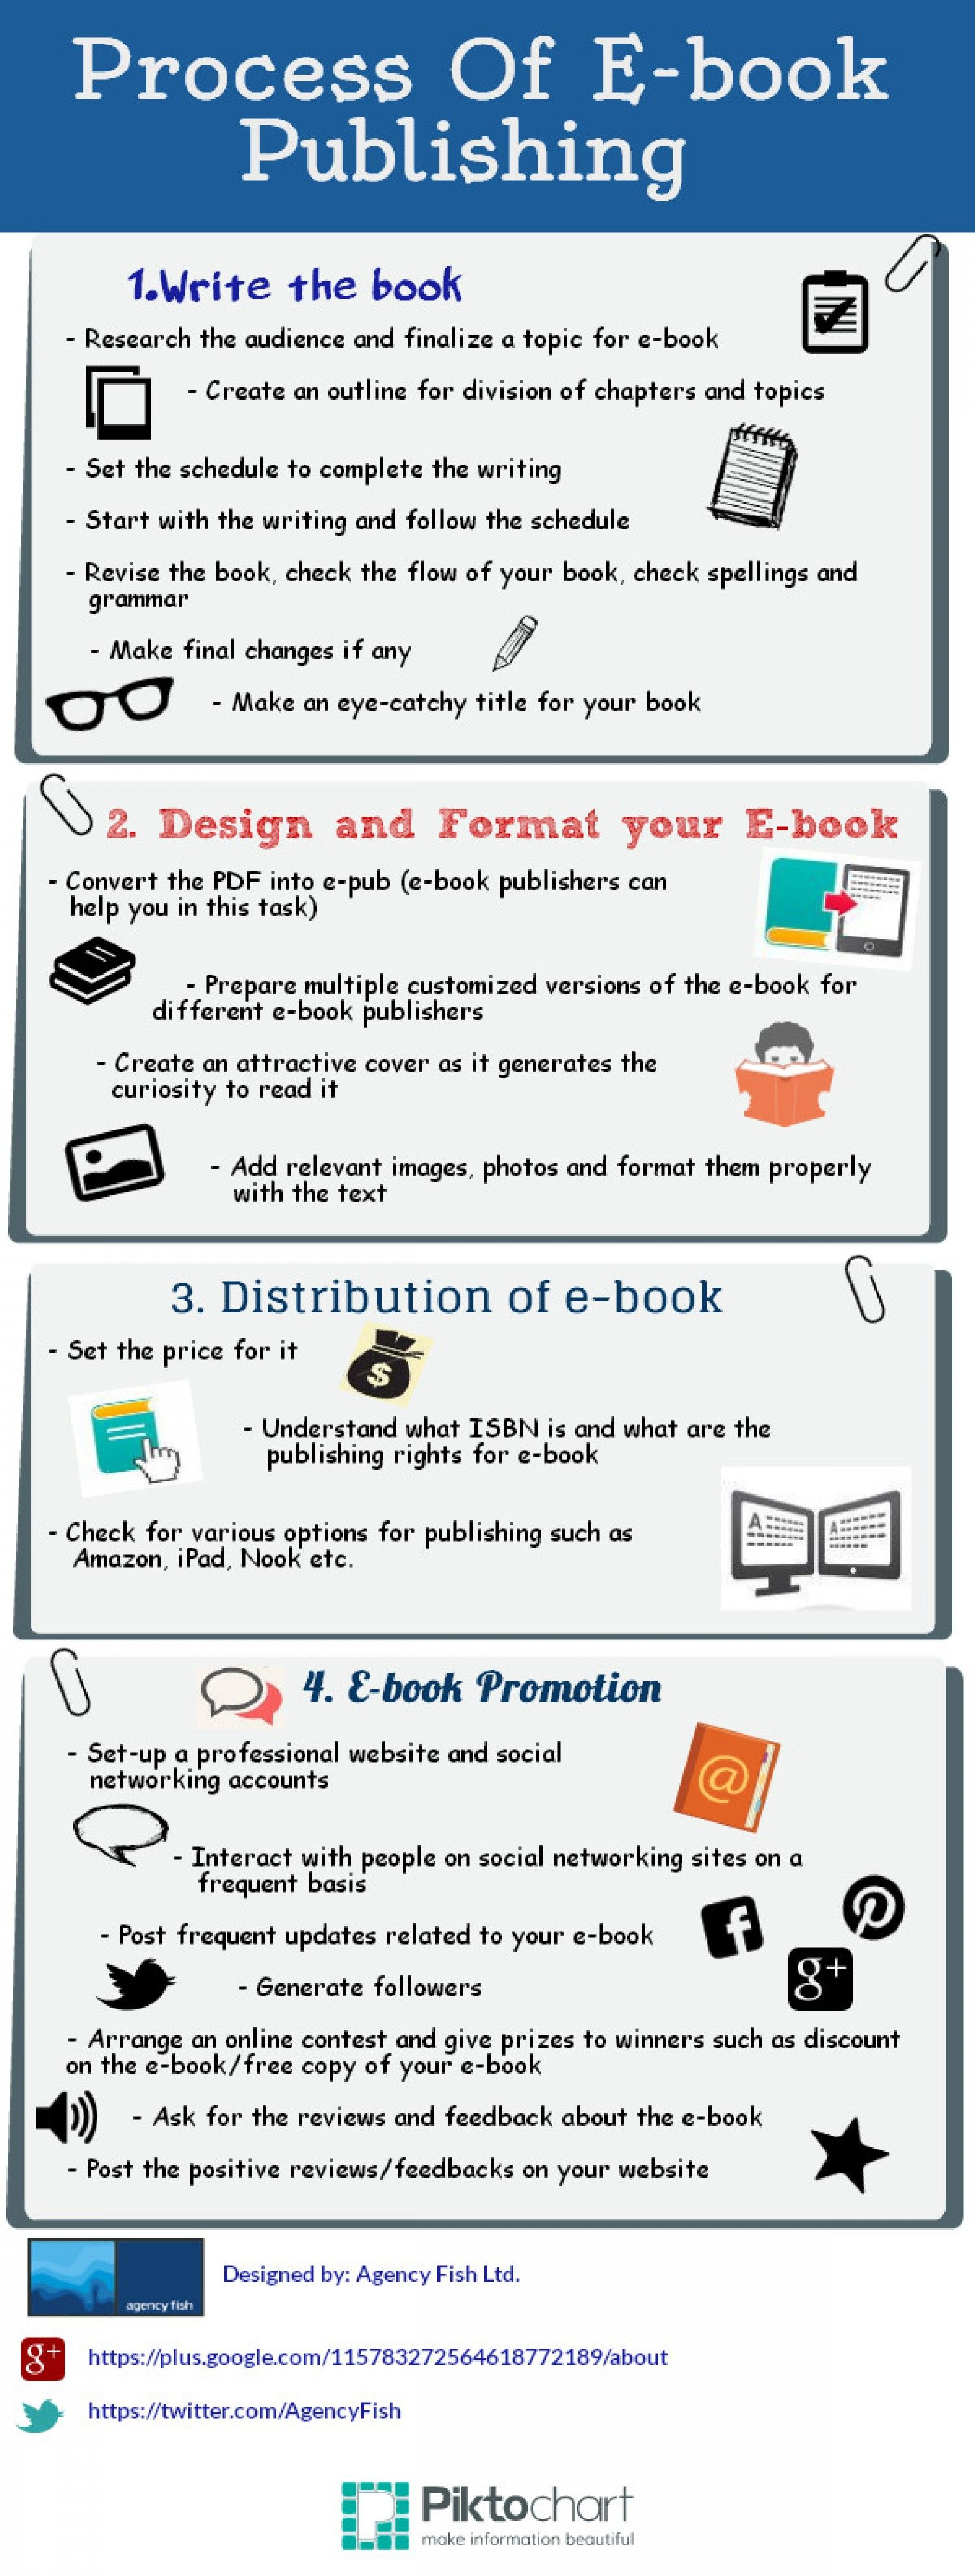 Want to self-publish your #NaNoWriMo book? Check out this infographic of the process of #ebook publishing. #selfpublishing